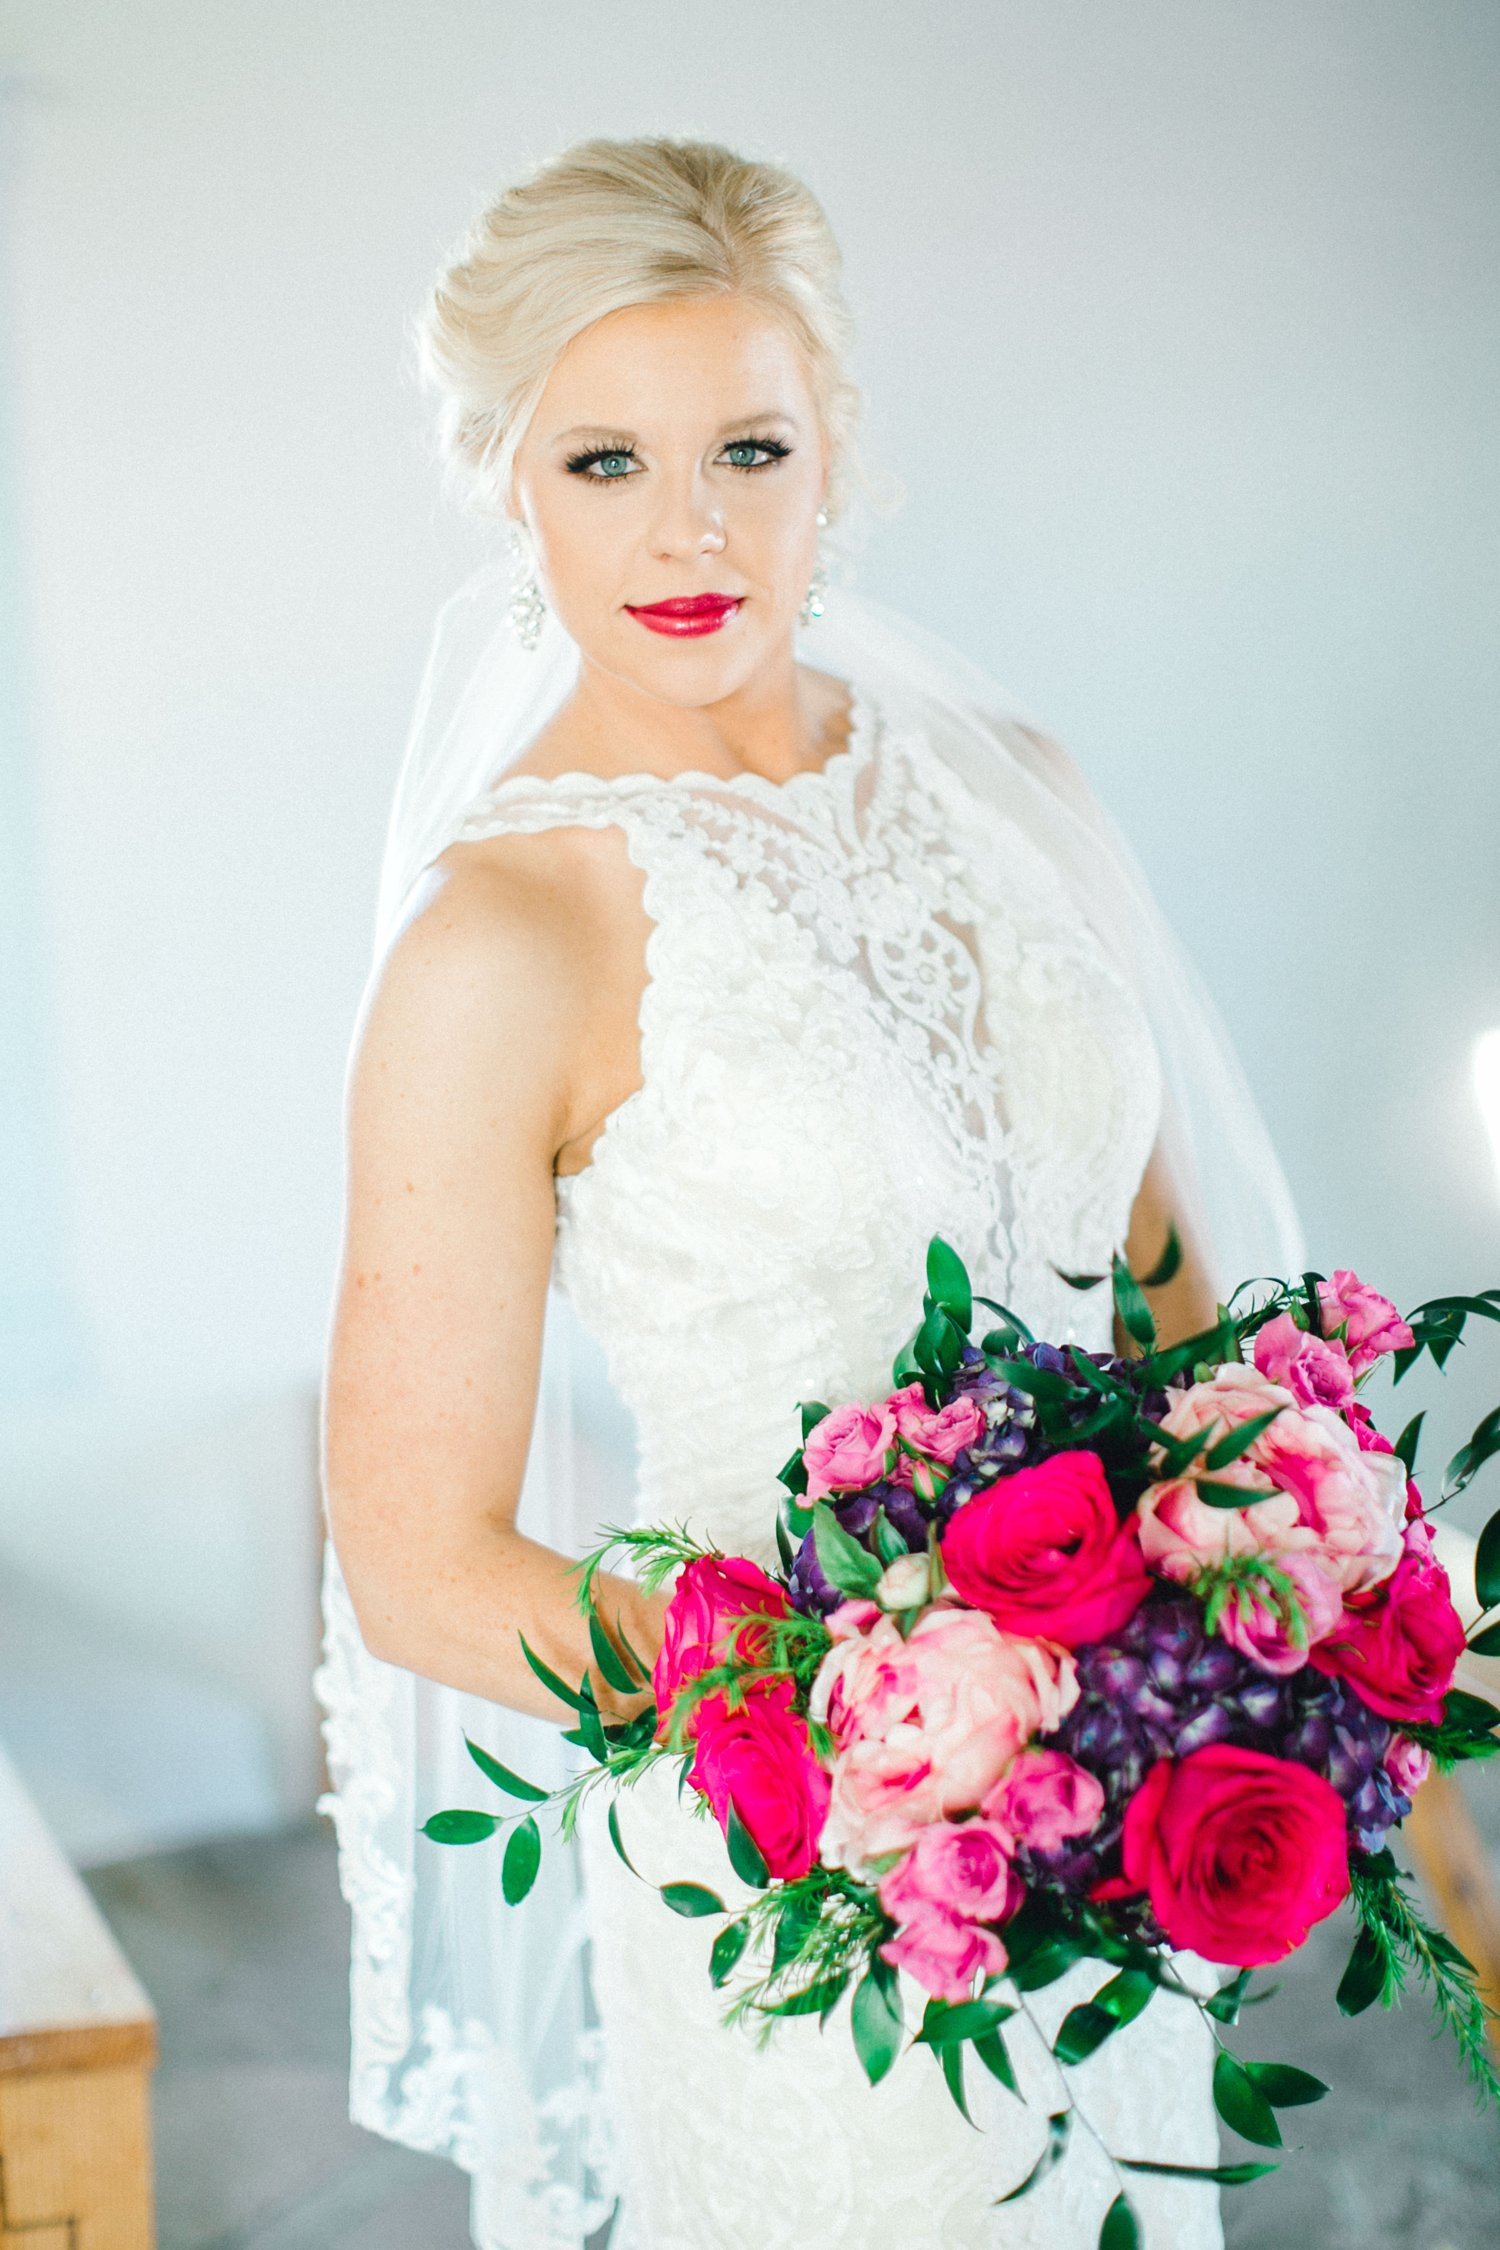 Jenna-evans-bridals-balmorhea-texas-fort-davis-wedding-photographer-lubbock-photographer__0033.jpg